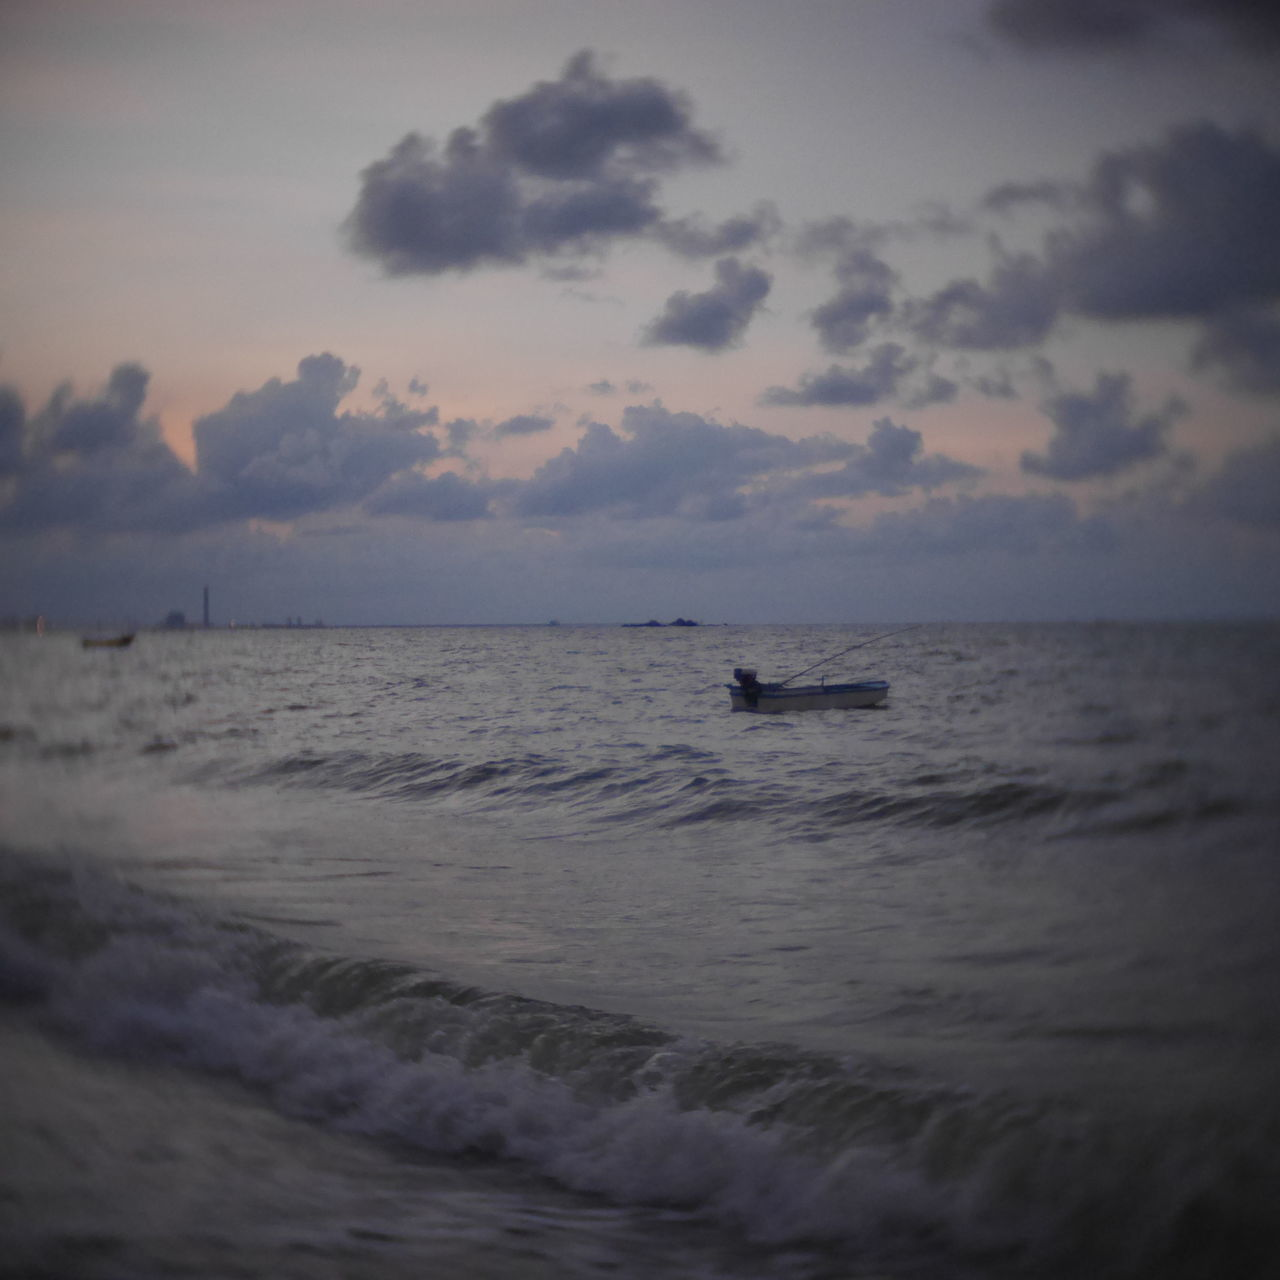 sea, water, horizon over water, sunset, nature, beauty in nature, sky, waterfront, scenics, tranquil scene, tranquility, silhouette, outdoors, nautical vessel, cloud - sky, beach, wave, one person, day, jet boat, people